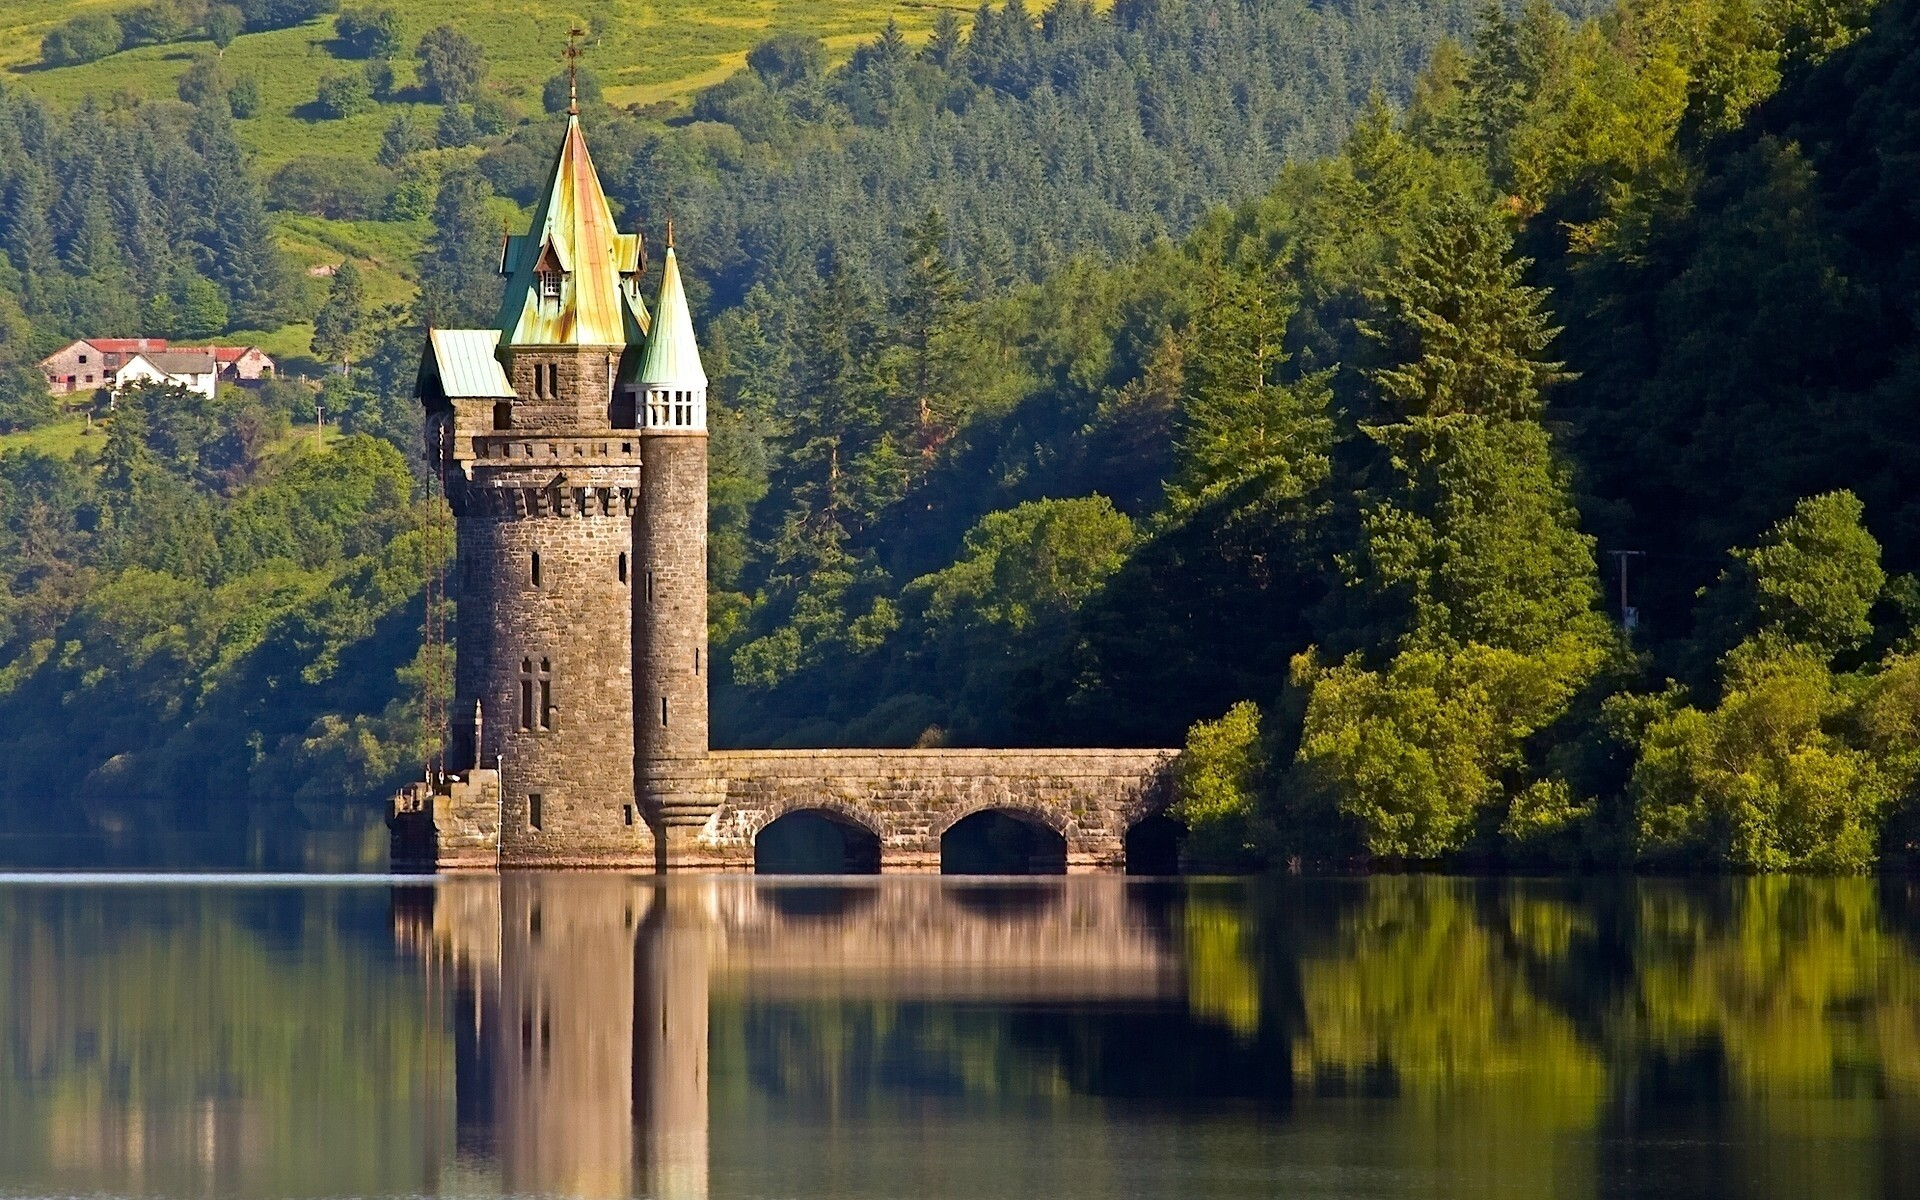 united kingdom lake river water reflection outdoors travel tree nature architecture sky wood daylight landscape bridge scenic fall vyrnwy tower england vyrnwy lake